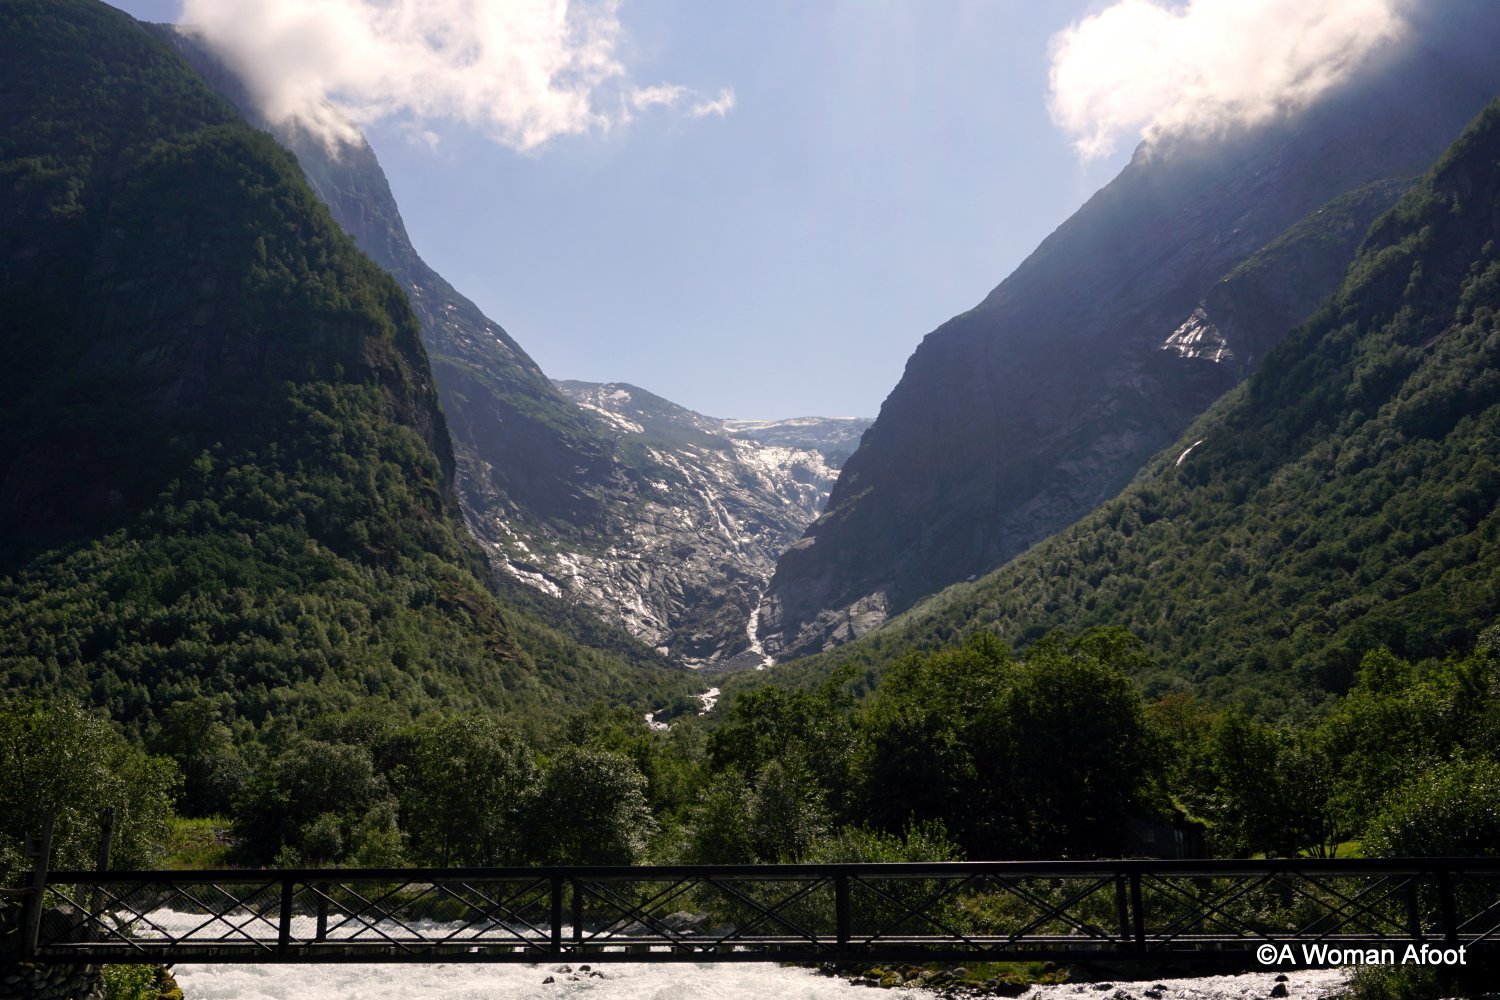 Do you want to see a glacier even if you are not a hiker? #Jostedalsbreen is the biggest mainland glacier in Europe and you can easily see one of its arm in #Briksdalsbre, #Norway! Mind-blowing views are just a walk away! Click to learn more @awomanafoot.com | #Norway #Glacier #EuropeanDestination #EuropeTravel #NatureTravel #VisitNorway | How to see a glacier | What to do in Norway | What to see near #Sognefjorden | #Adventure